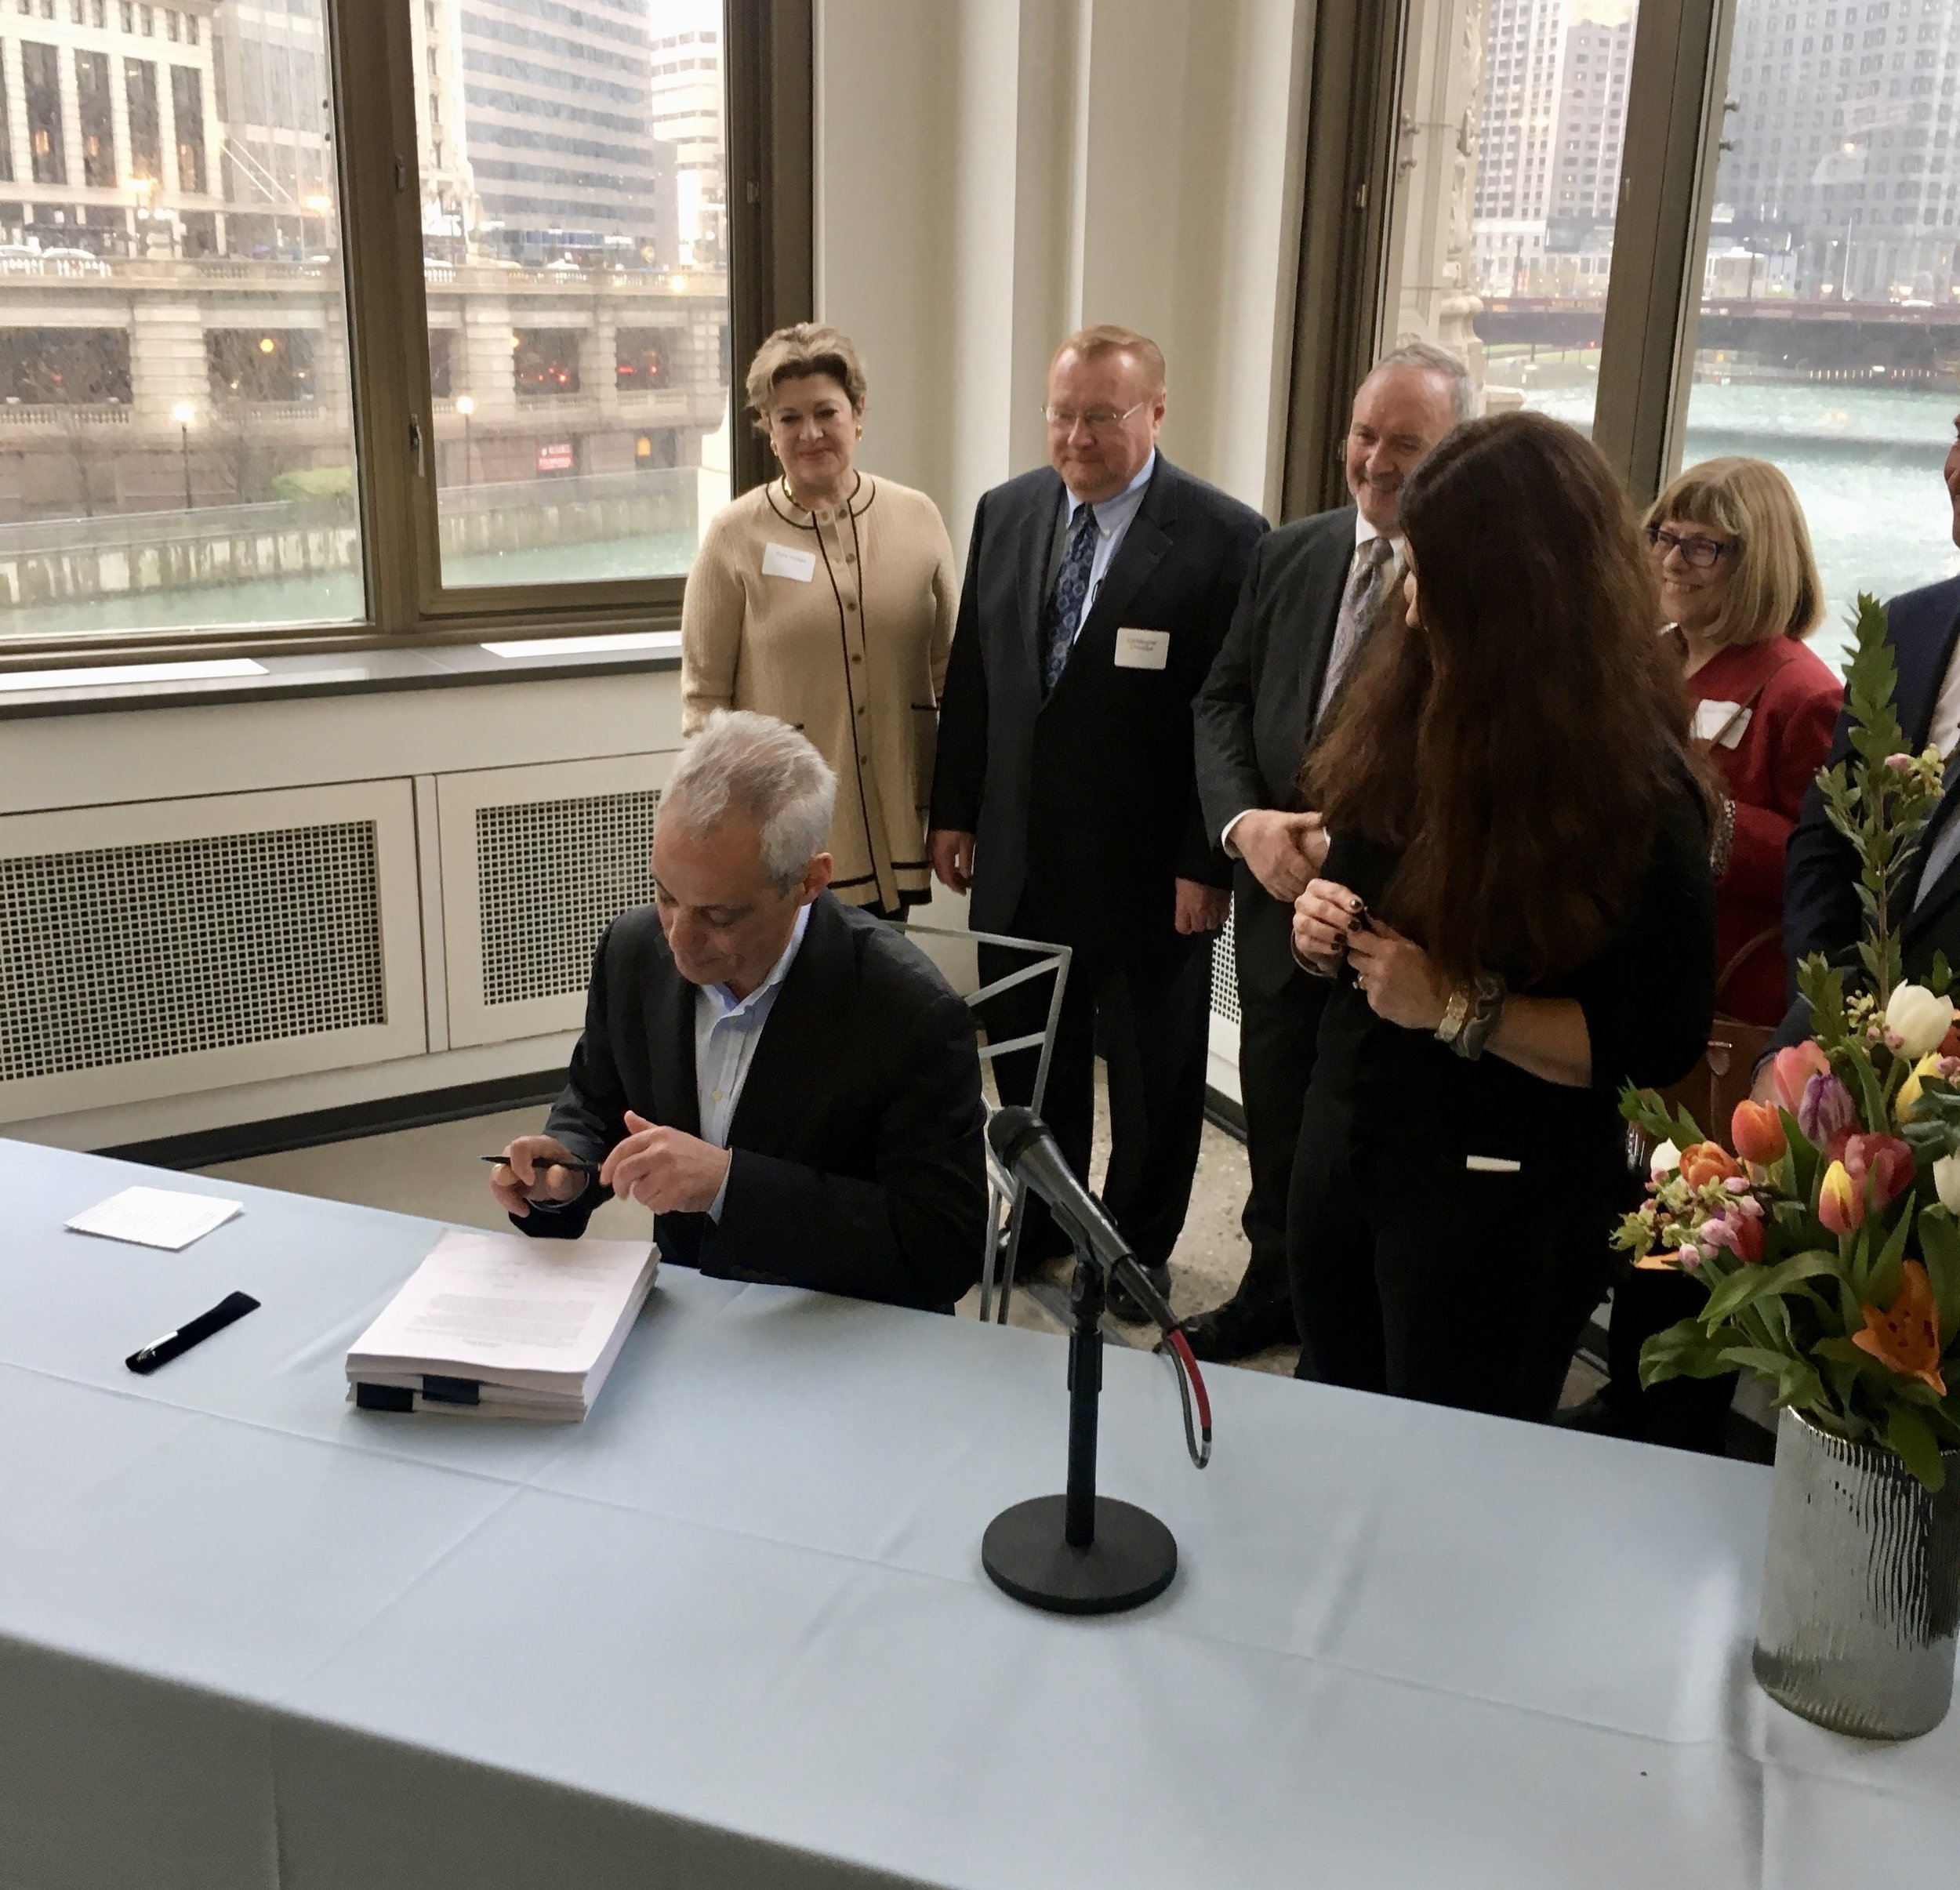 Commissioner Judy Frydland overlooks Mayor Rahm Emanuel ceremoniously signs the updated building code legislation. Photo by Steven Vance